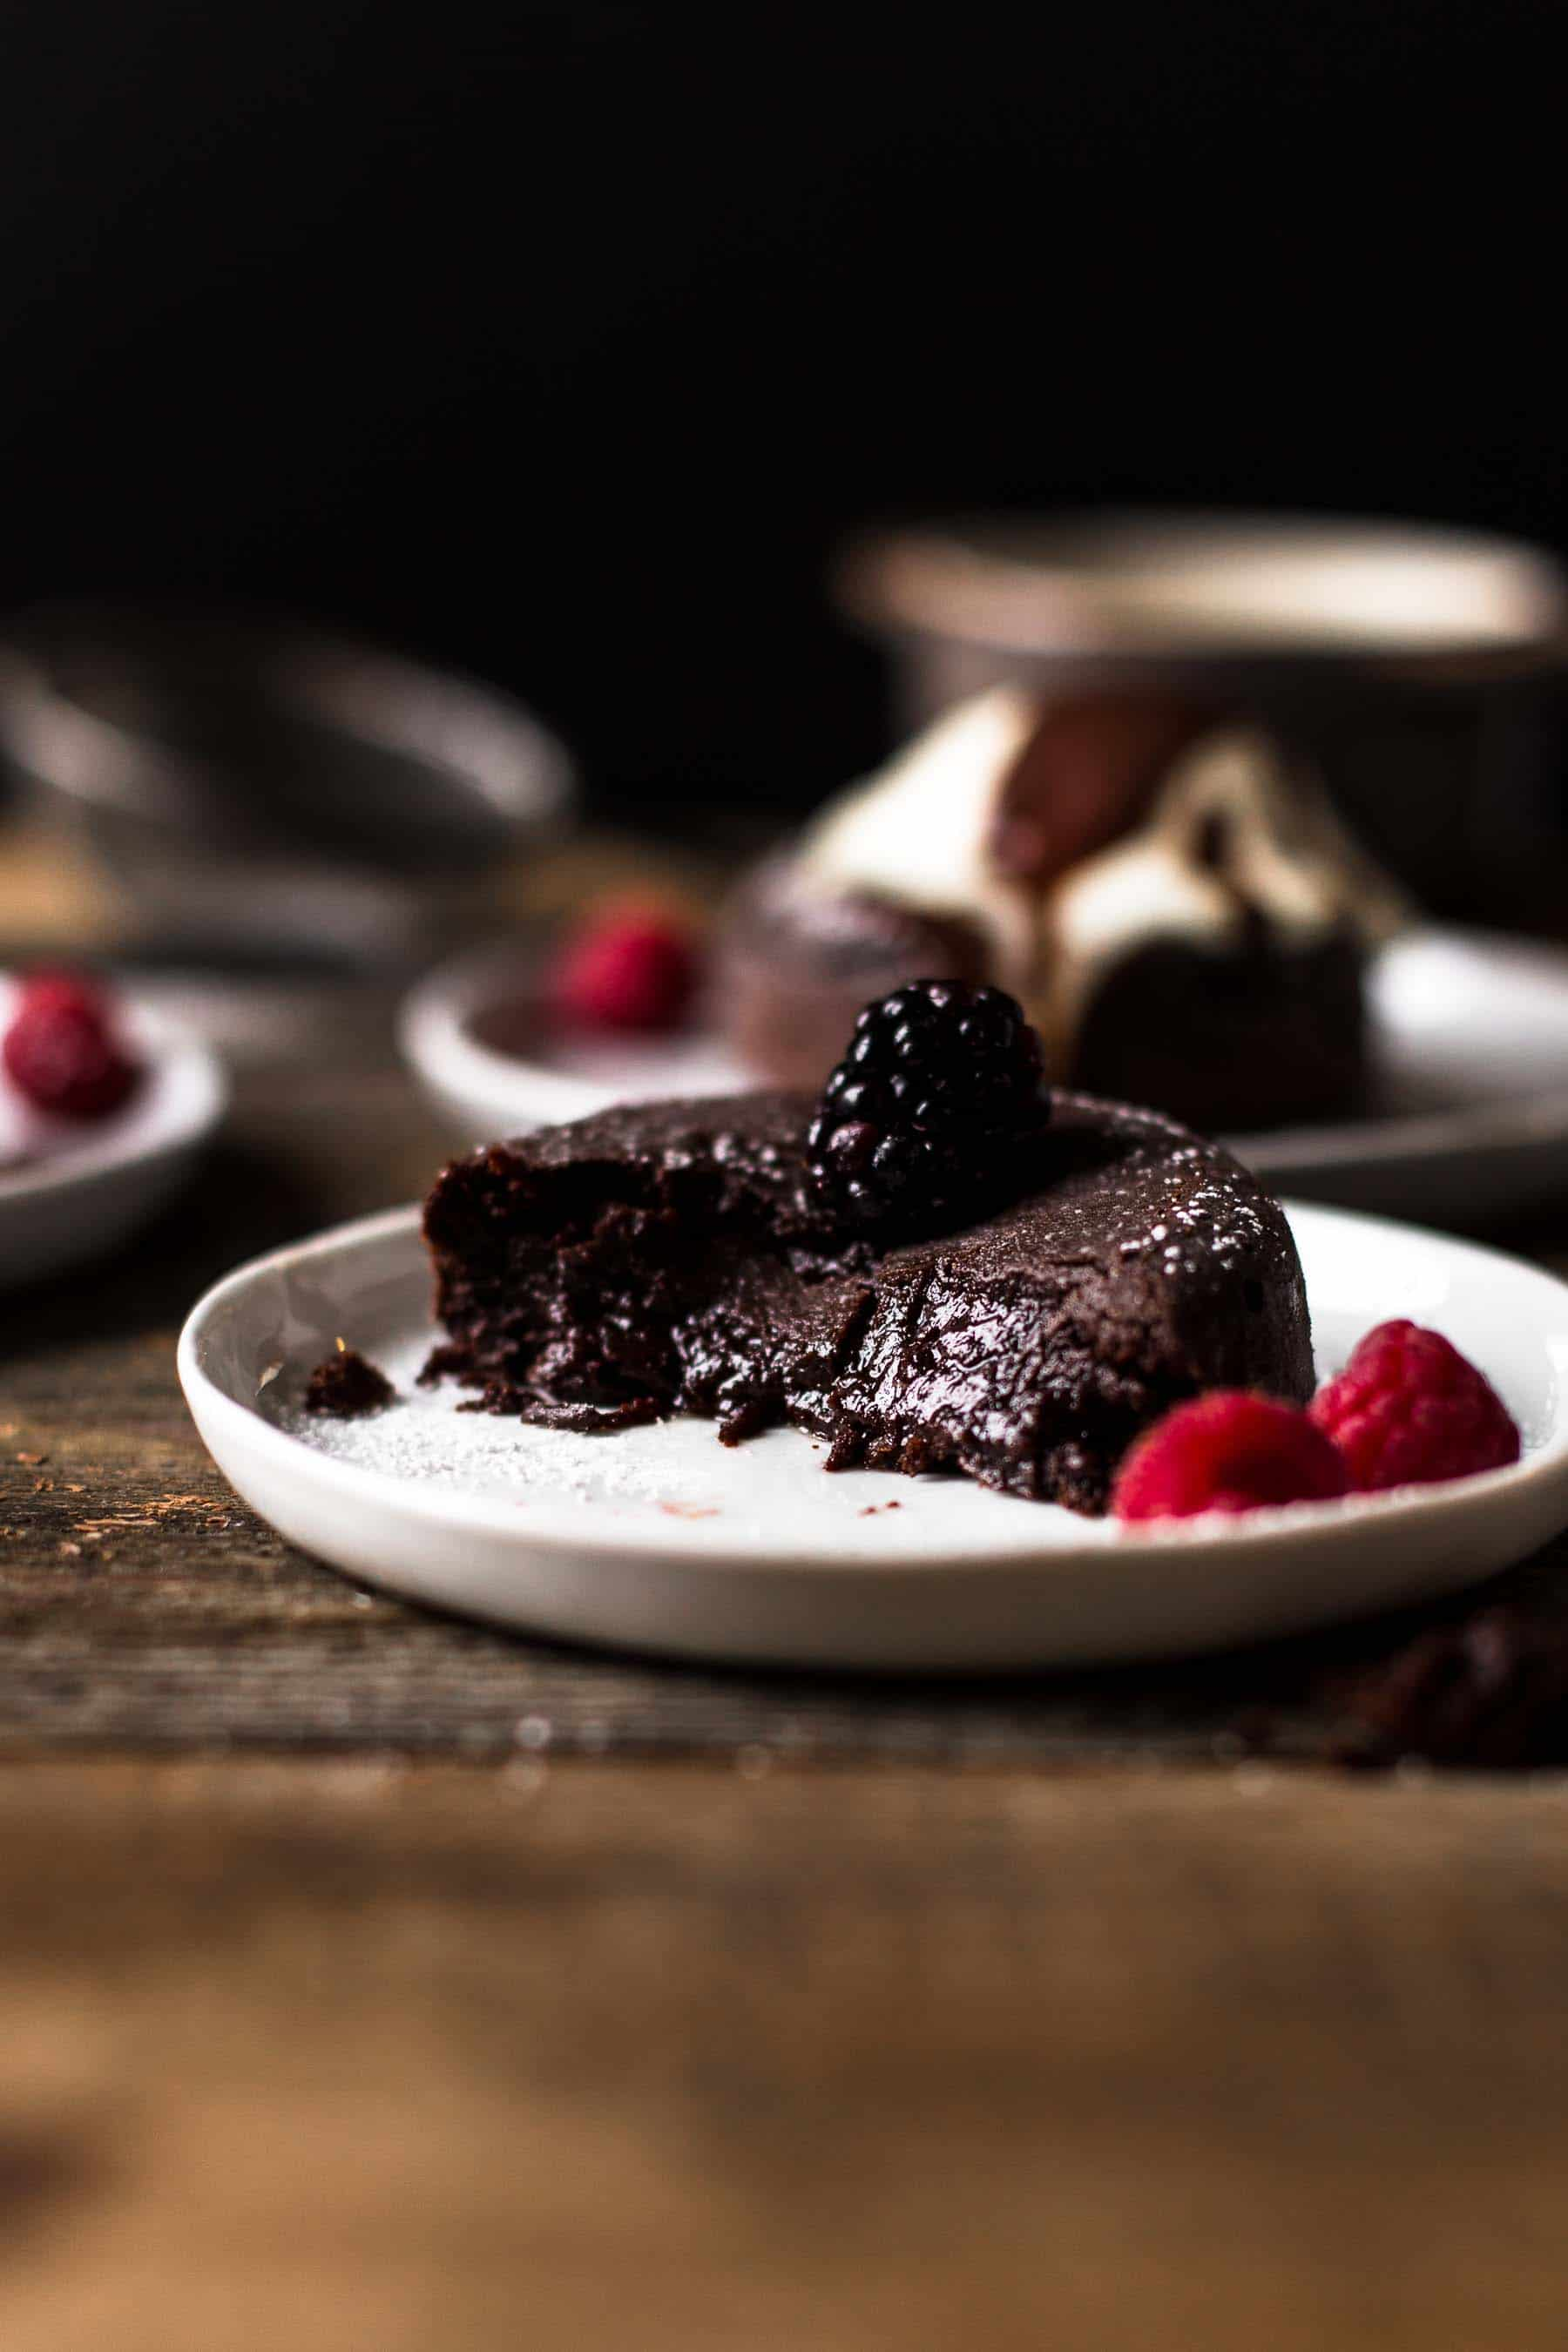 Mini Chocolate Cake with molten center from the center